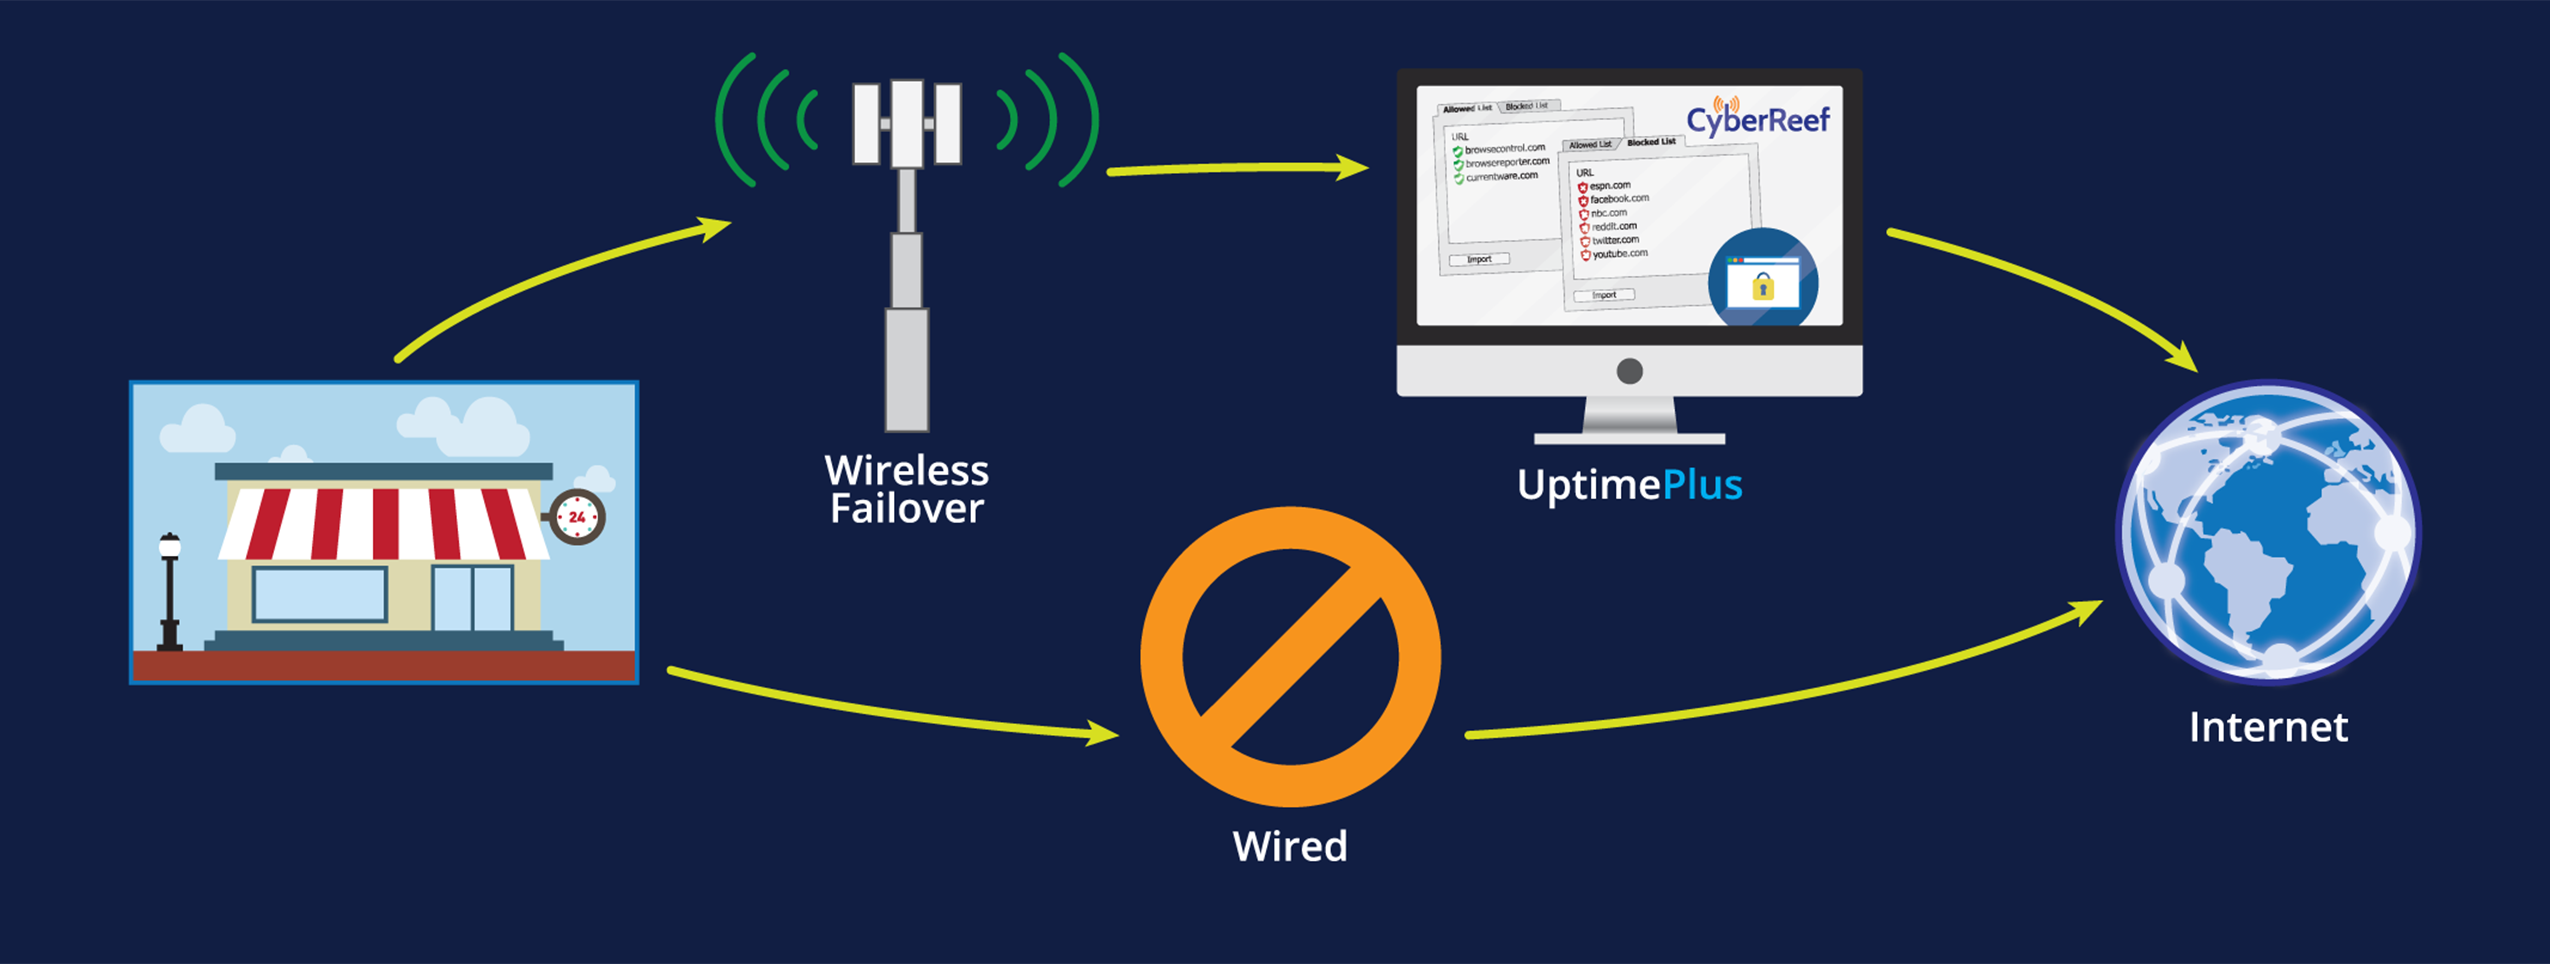 Wireless failover - UptimePlus - Internet - Wired